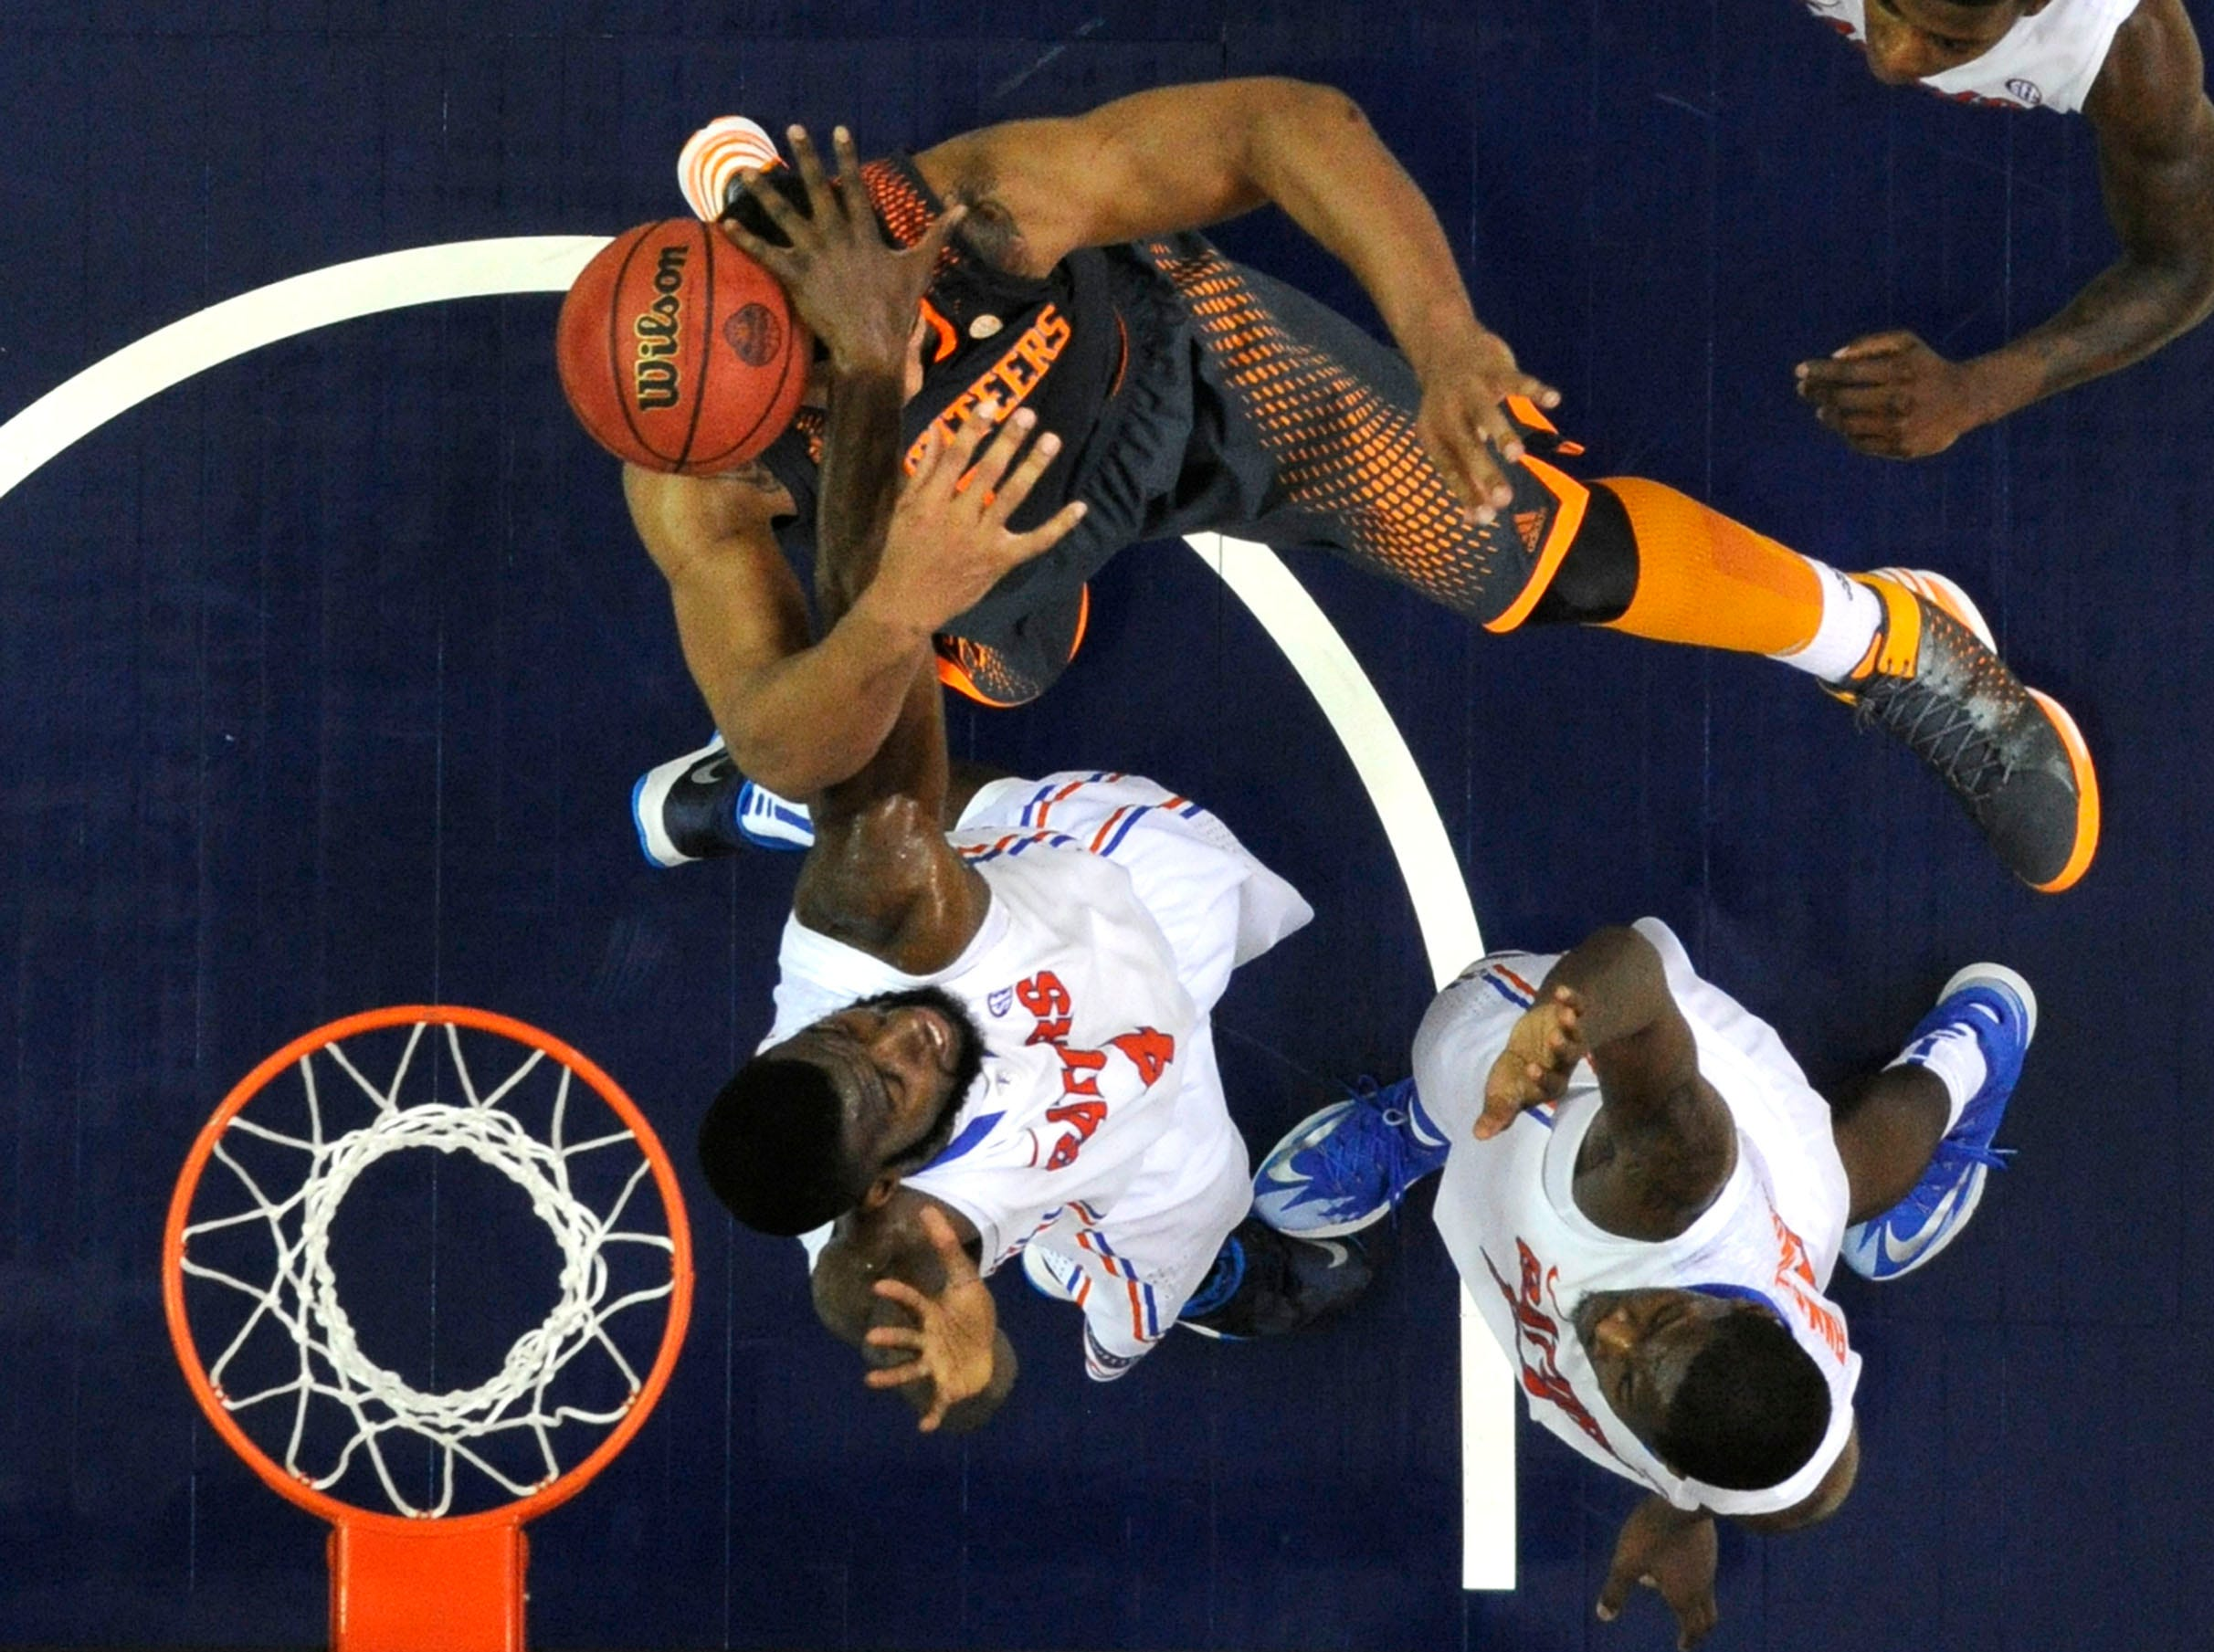 Tennessee forward Jarnell Stokes (5) is hit in the face while attempting a layup against Florida center Patric Young (4) during the second half of an SEC tournament semifinal game at the Georgia Dome in Atlanta on Saturday, March 15, 2014. Tennessee lost 56-49.